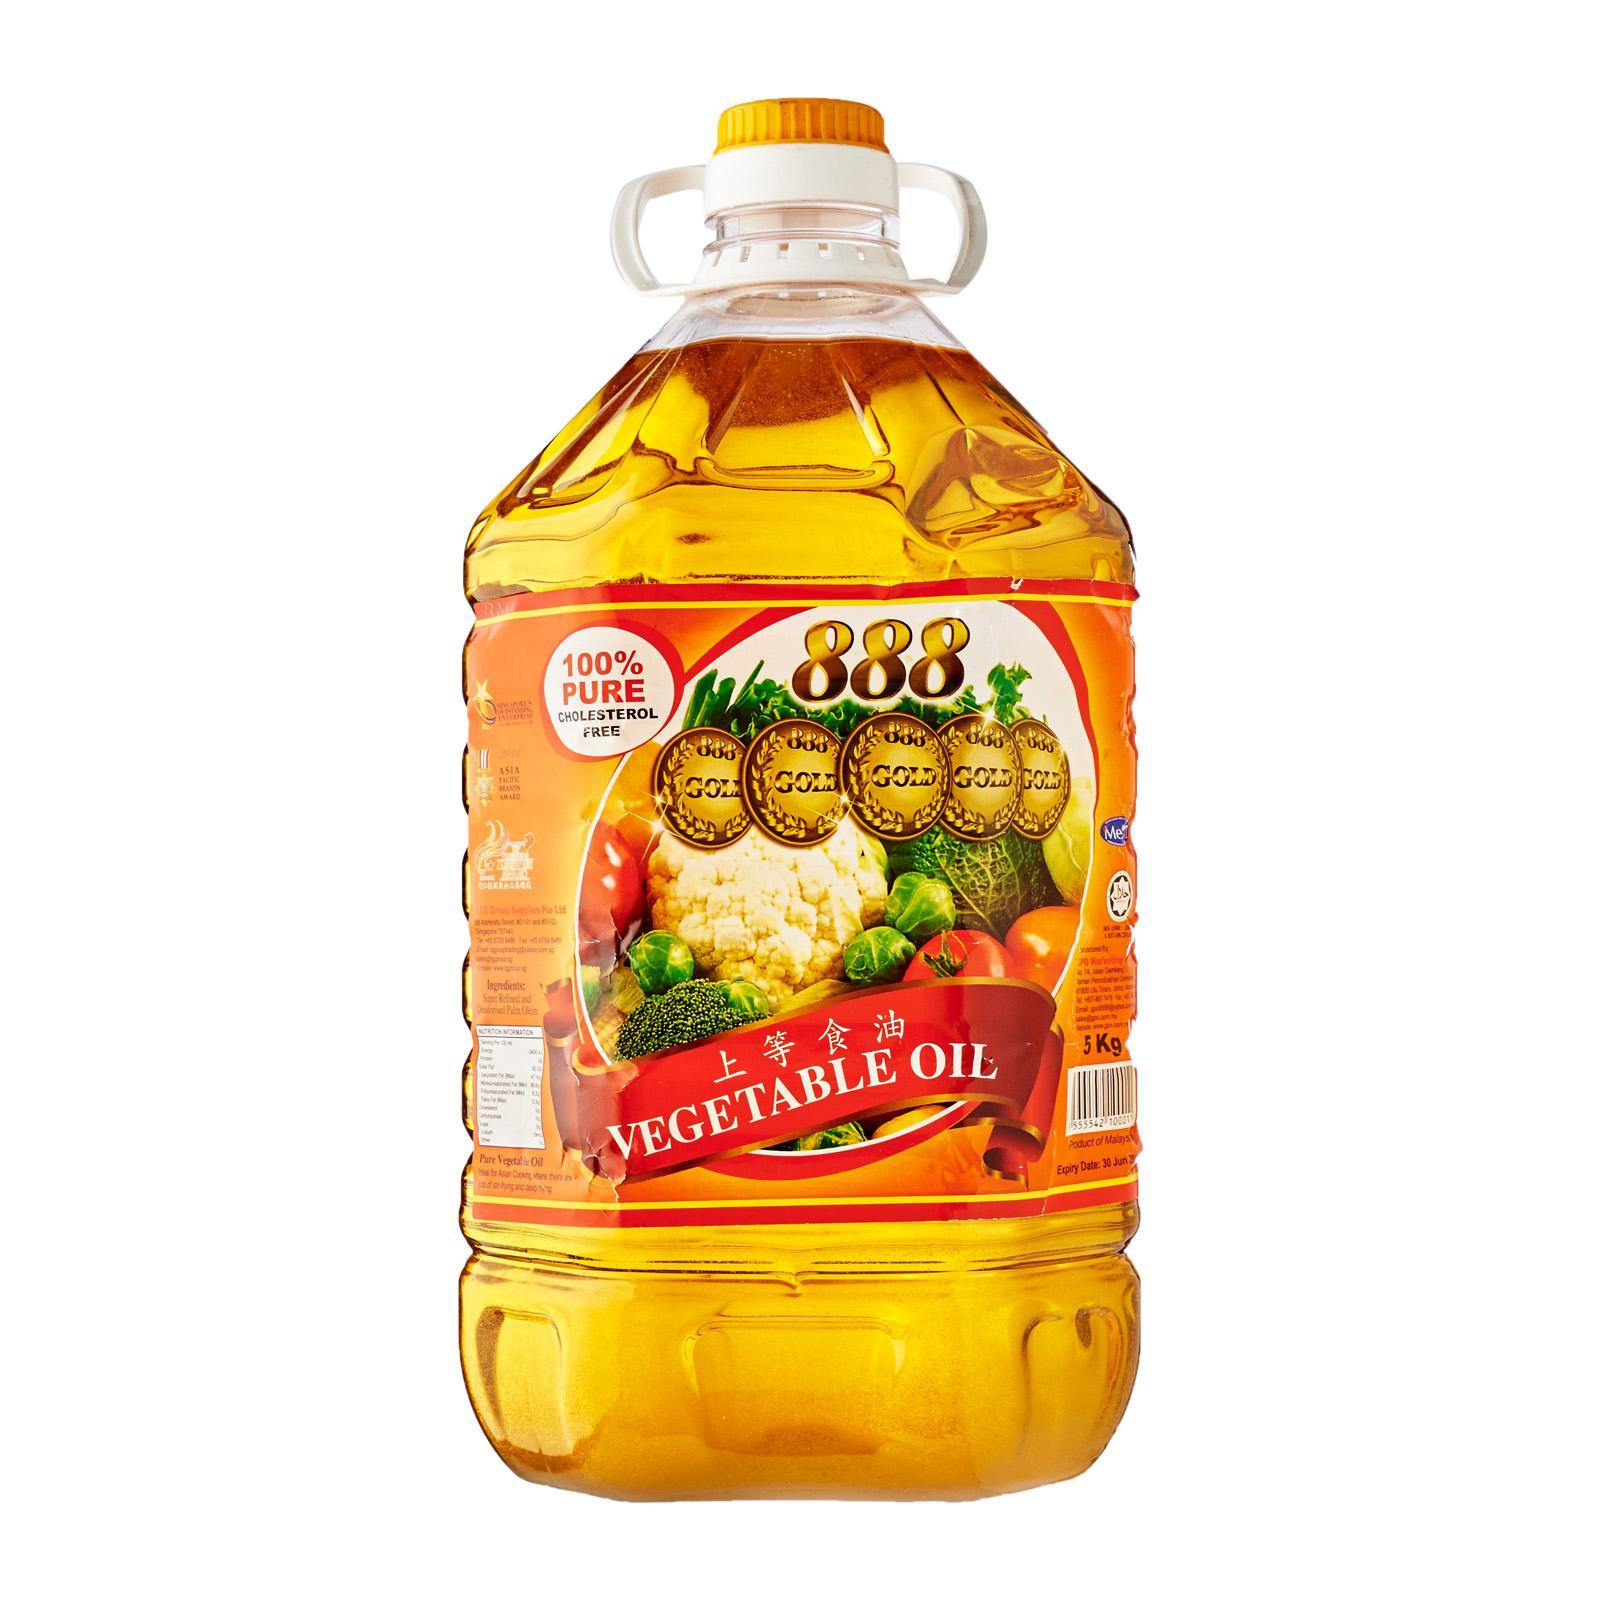 Premium Cooking Vegetable Oil 5kg - By Food Service By Redmart.